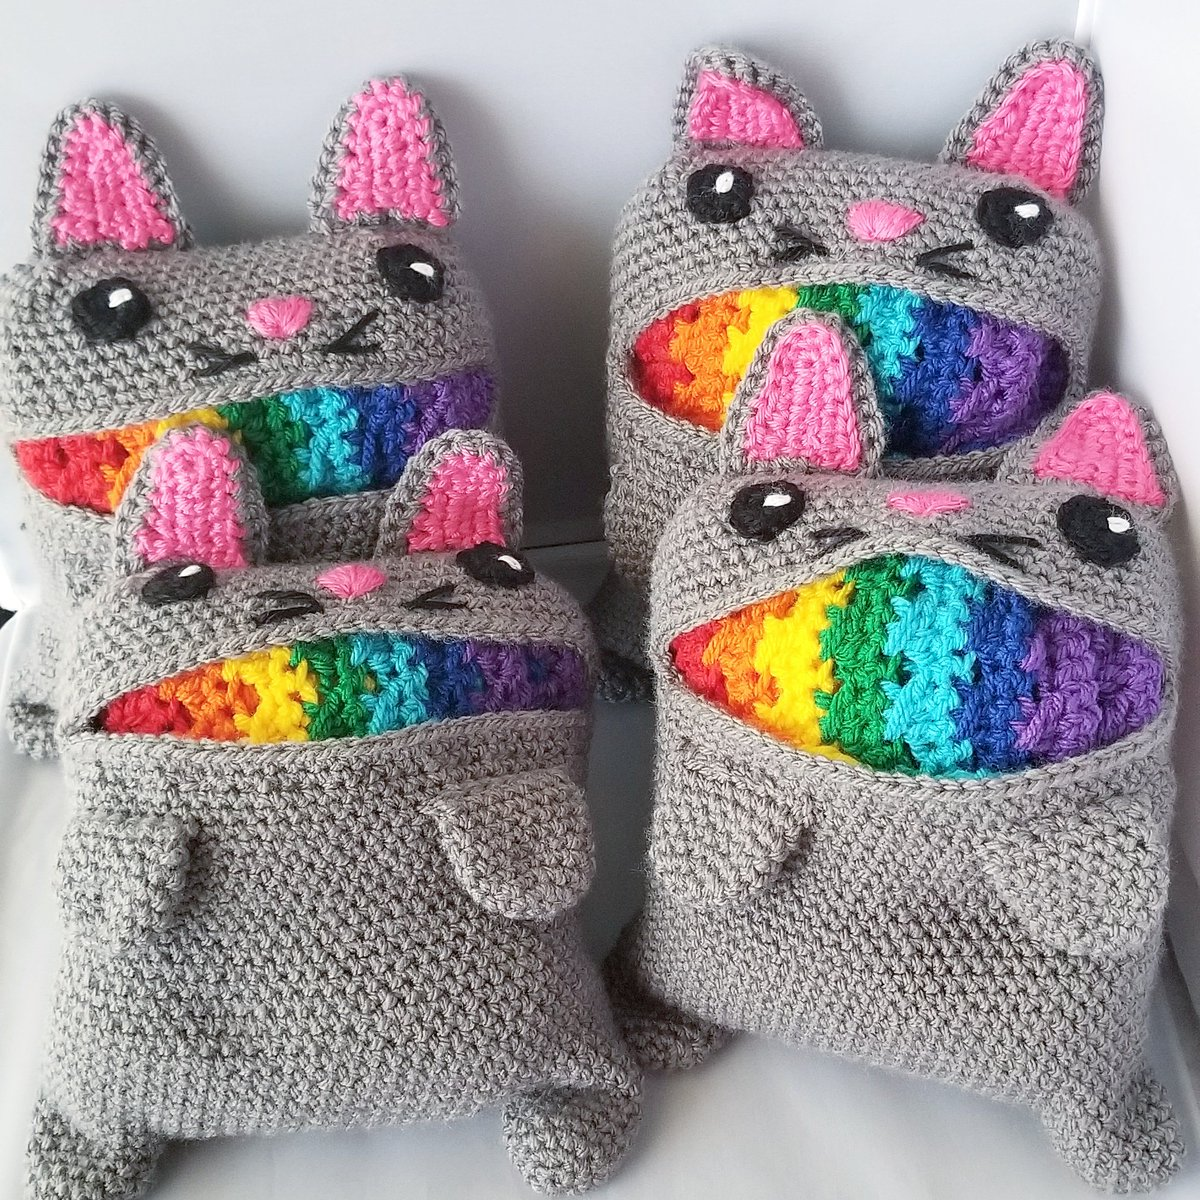 Orders are going out this week with all of the cat rainbow barfy goodness! 🌈🤮🙀 @paintboxyarns from @loveknittingcom  #catrainbowbarfscarf  #rainbowcatbarf  #rainbowscarf  #rainbow🌈  #catbarfscarf  #paintboxyarns  #loveknittingcom  #loveknitting  #paintbox #smallbusiness